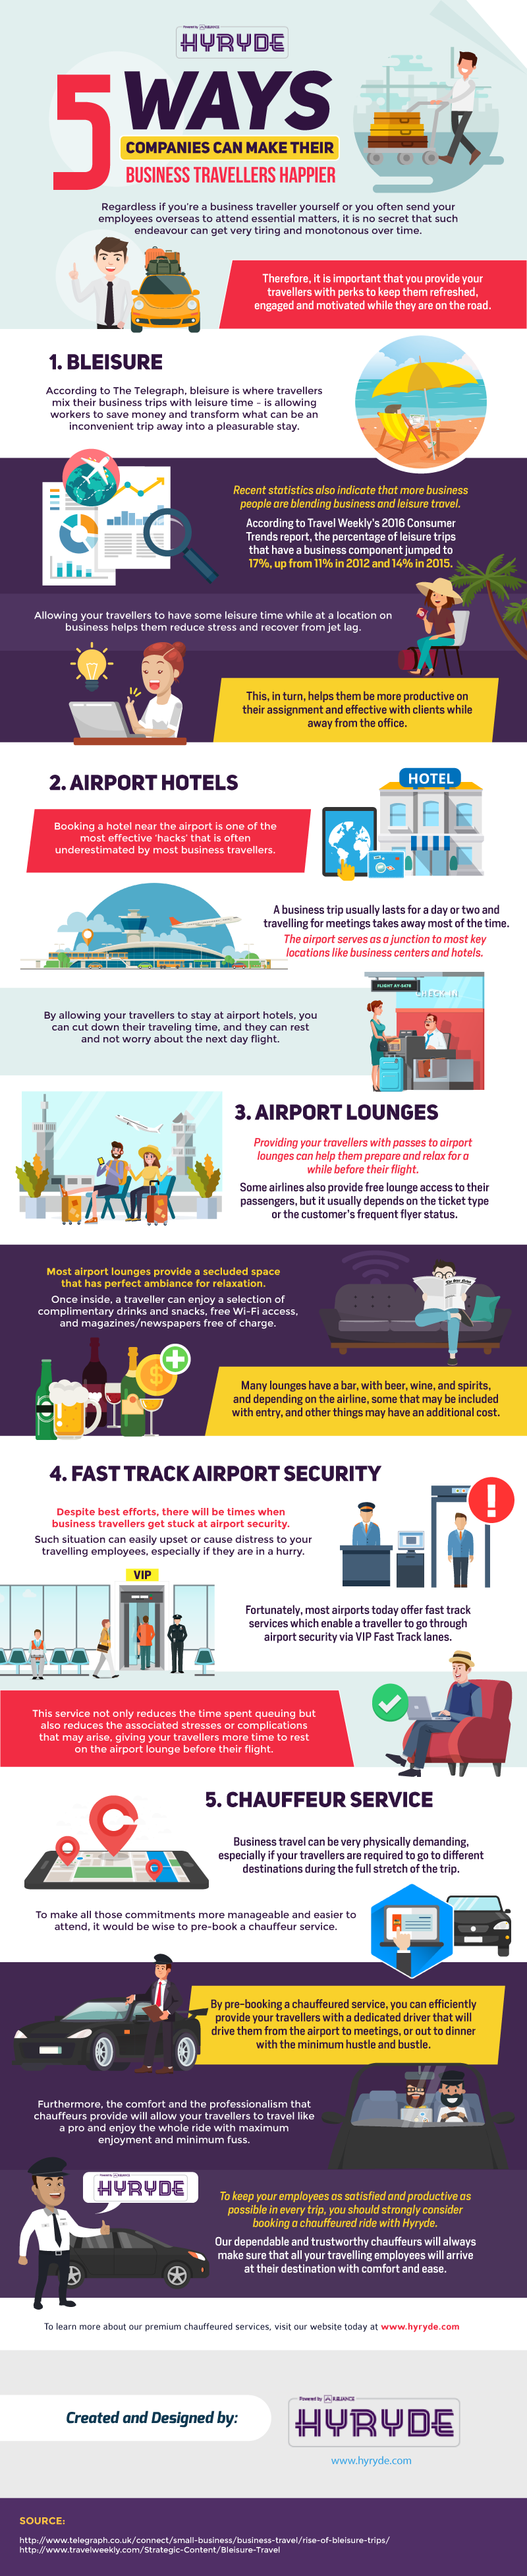 5 Ways Companies Can Make Their Business Travellers Happier #infographic #Business #Travel #infographics #Companies #Infographic